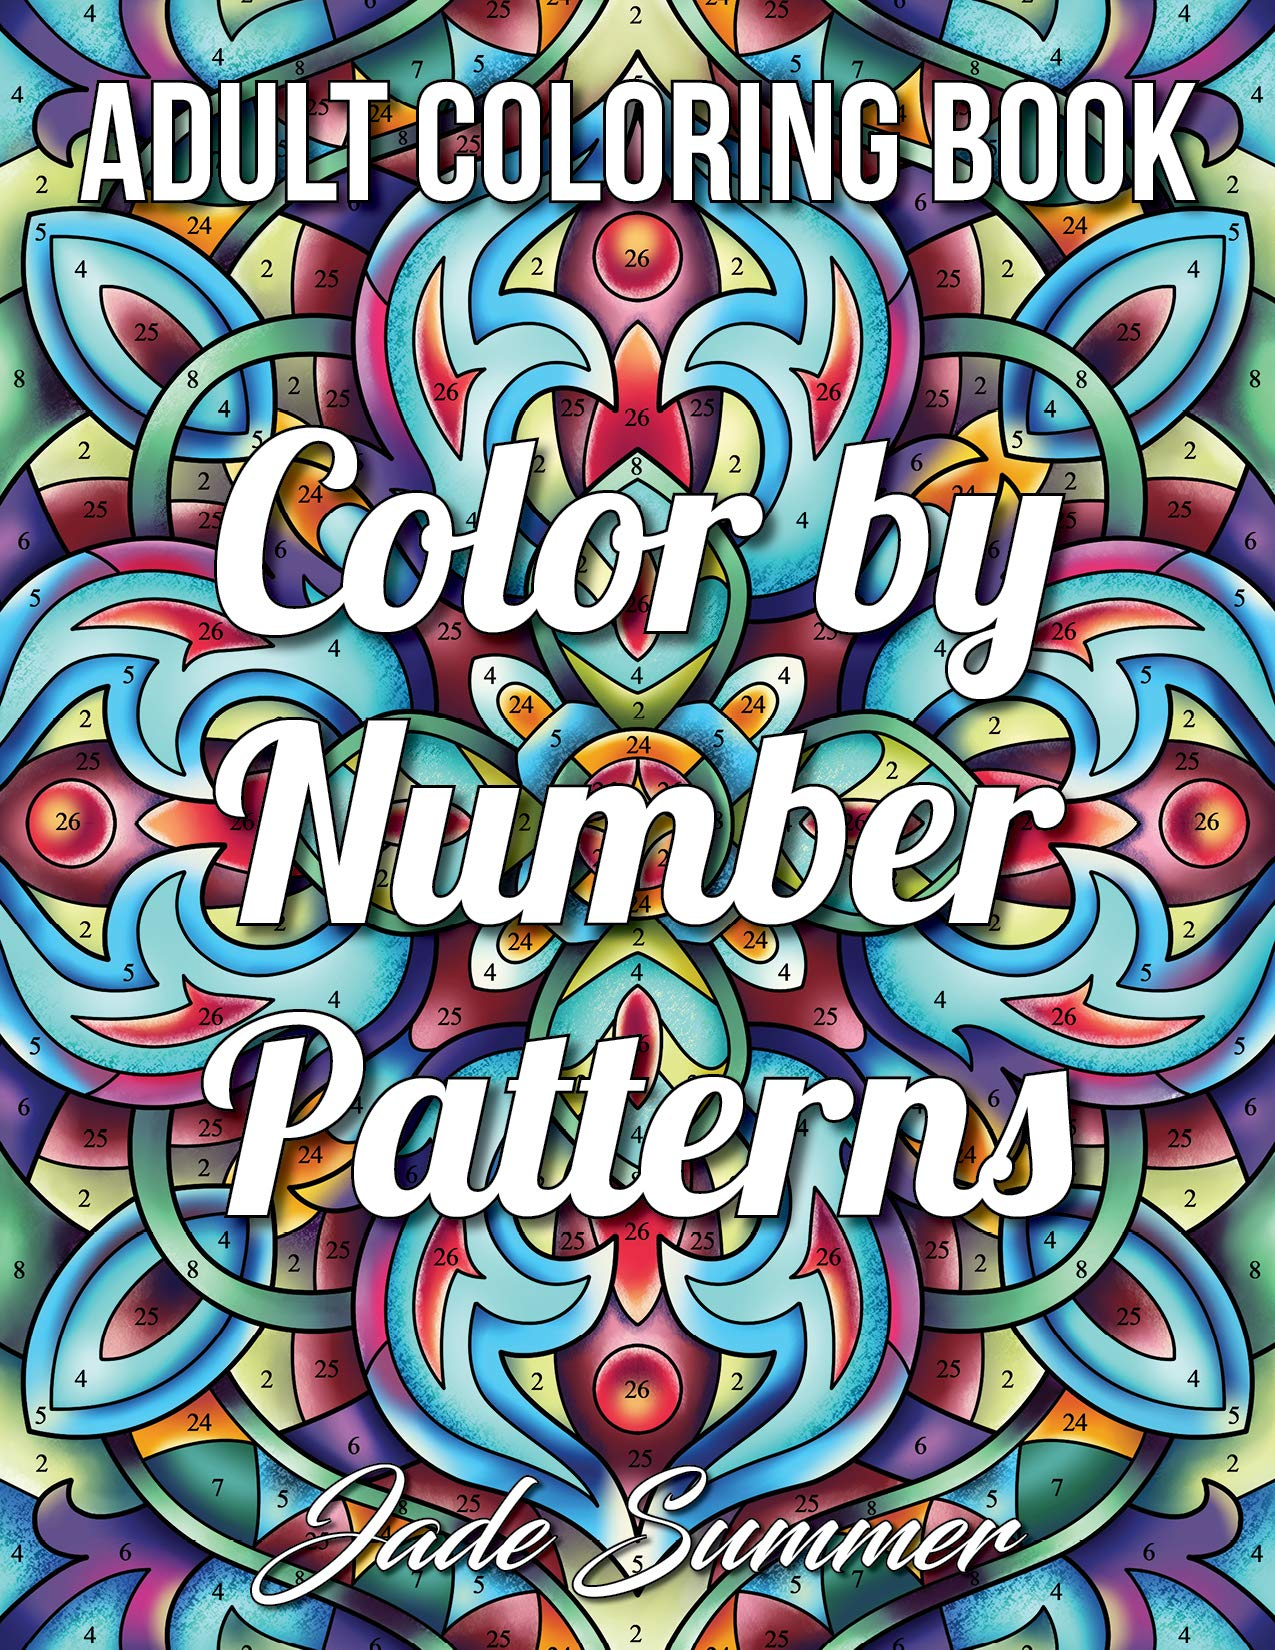 Color By Number Patterns An Adult Coloring Book With Fun Easy And Relaxing Coloring Pages Color By Number Coloring Books For Adults Summer Jade 9798677295270 Amazon Com Books